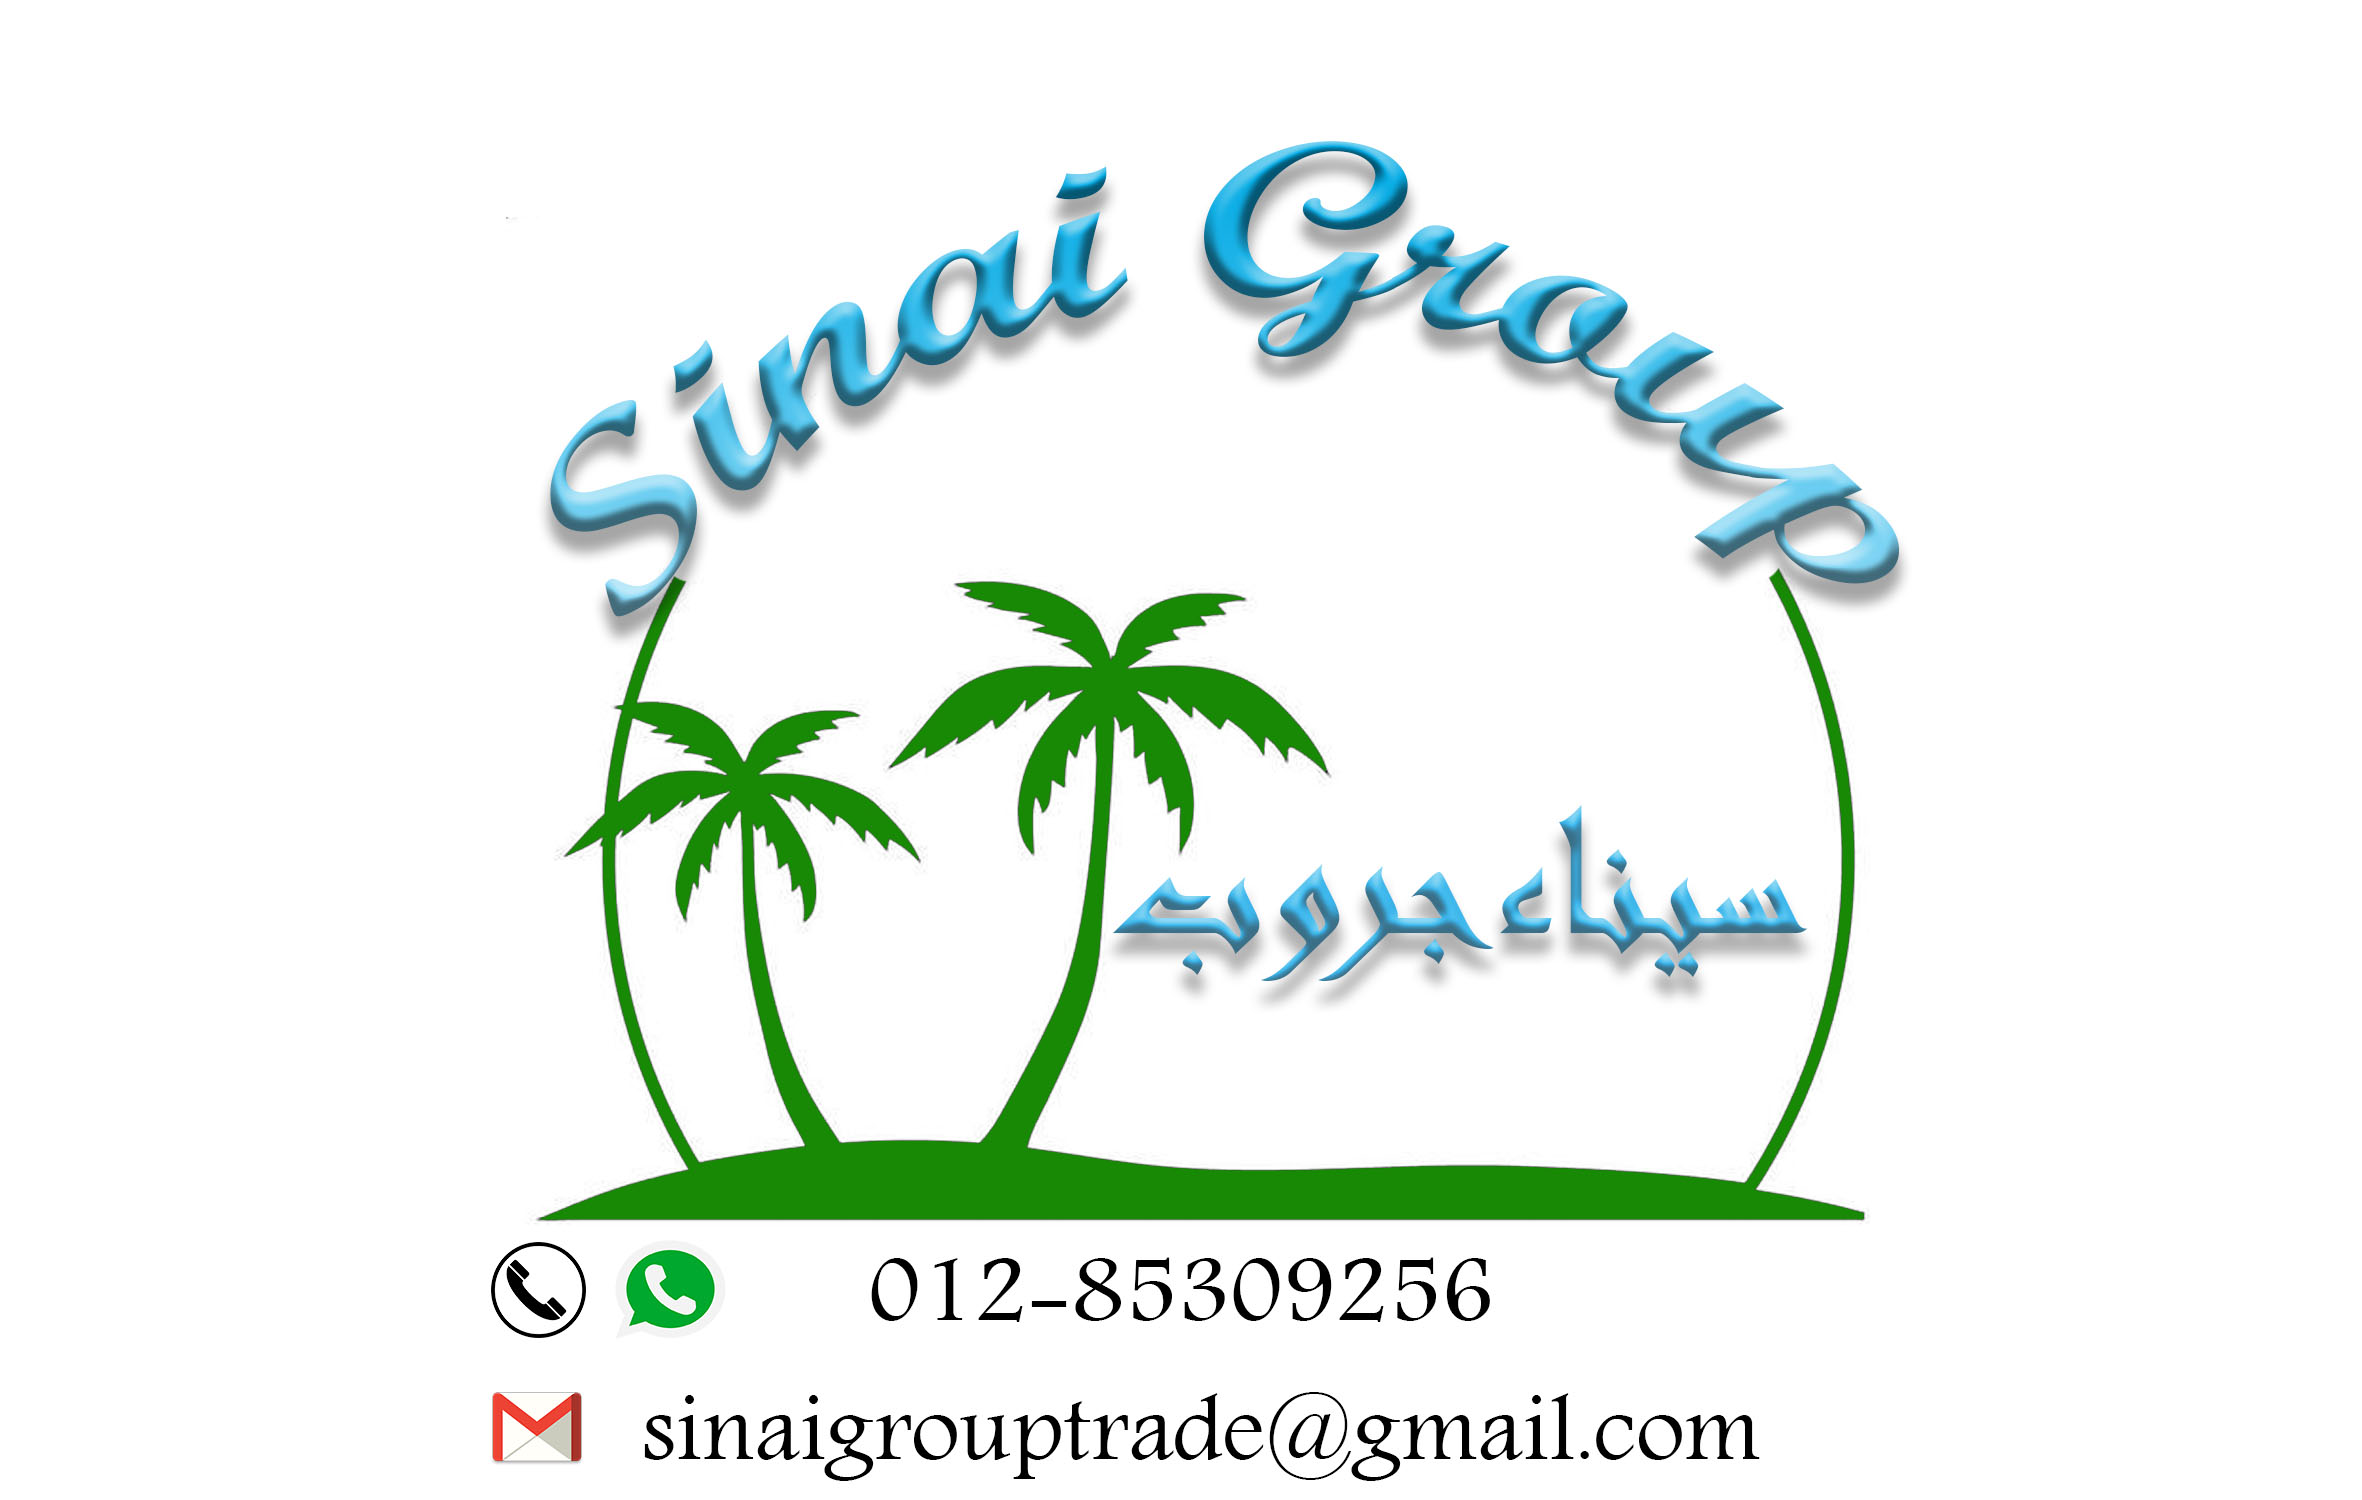 sinai group Profile Picture